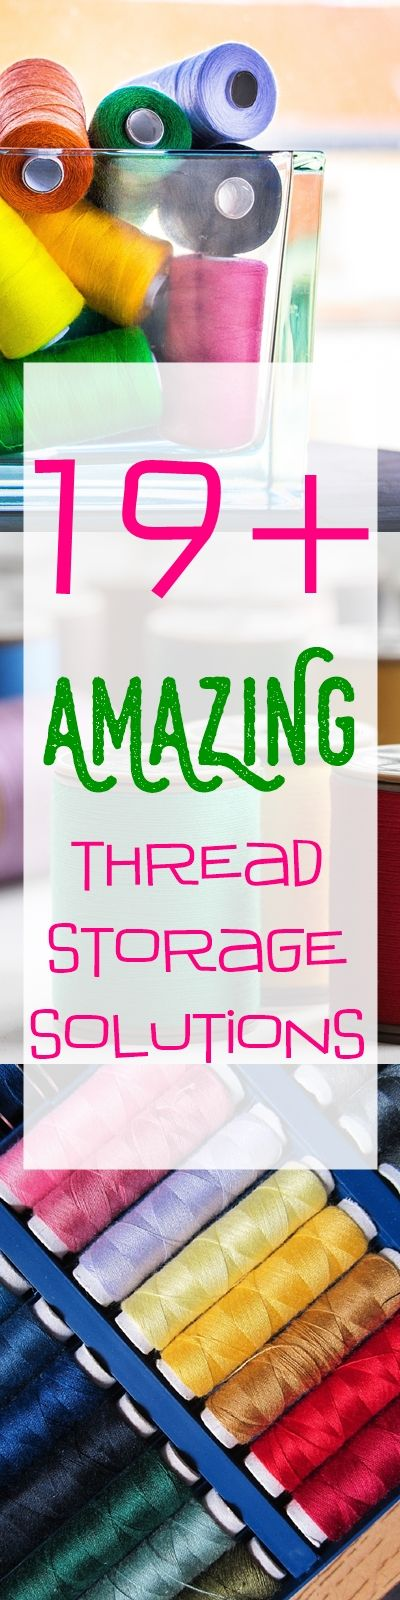 sewing room storage | thread organization | thread storage